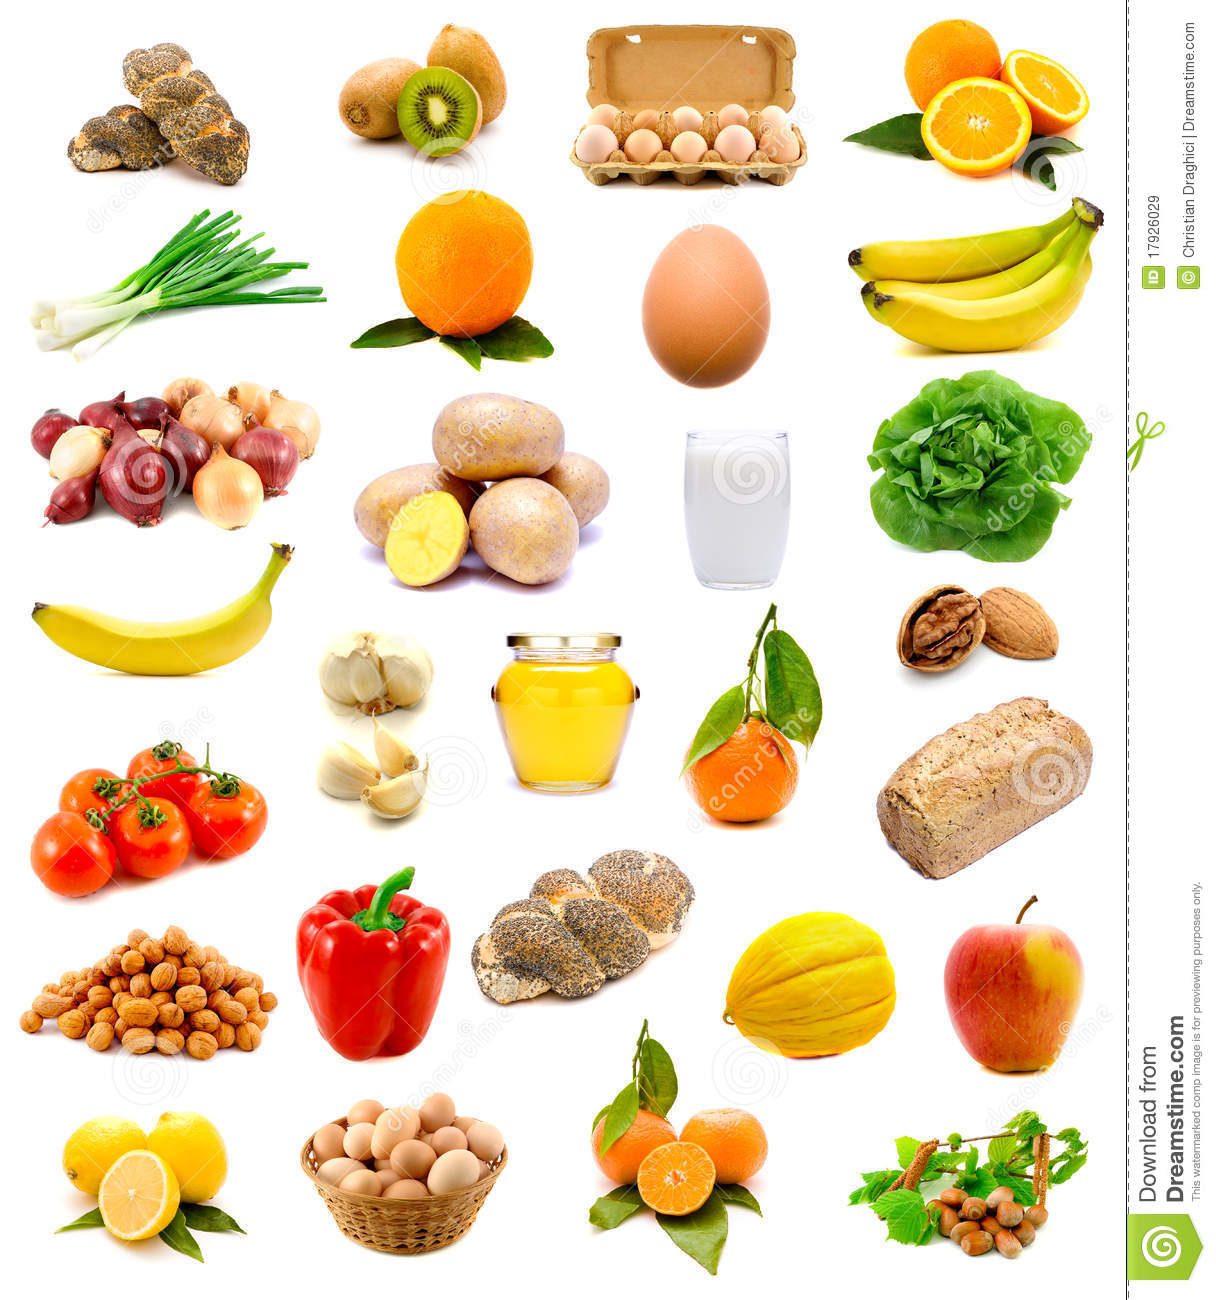 Healthy Food Fruits And Vegetables Stock Image